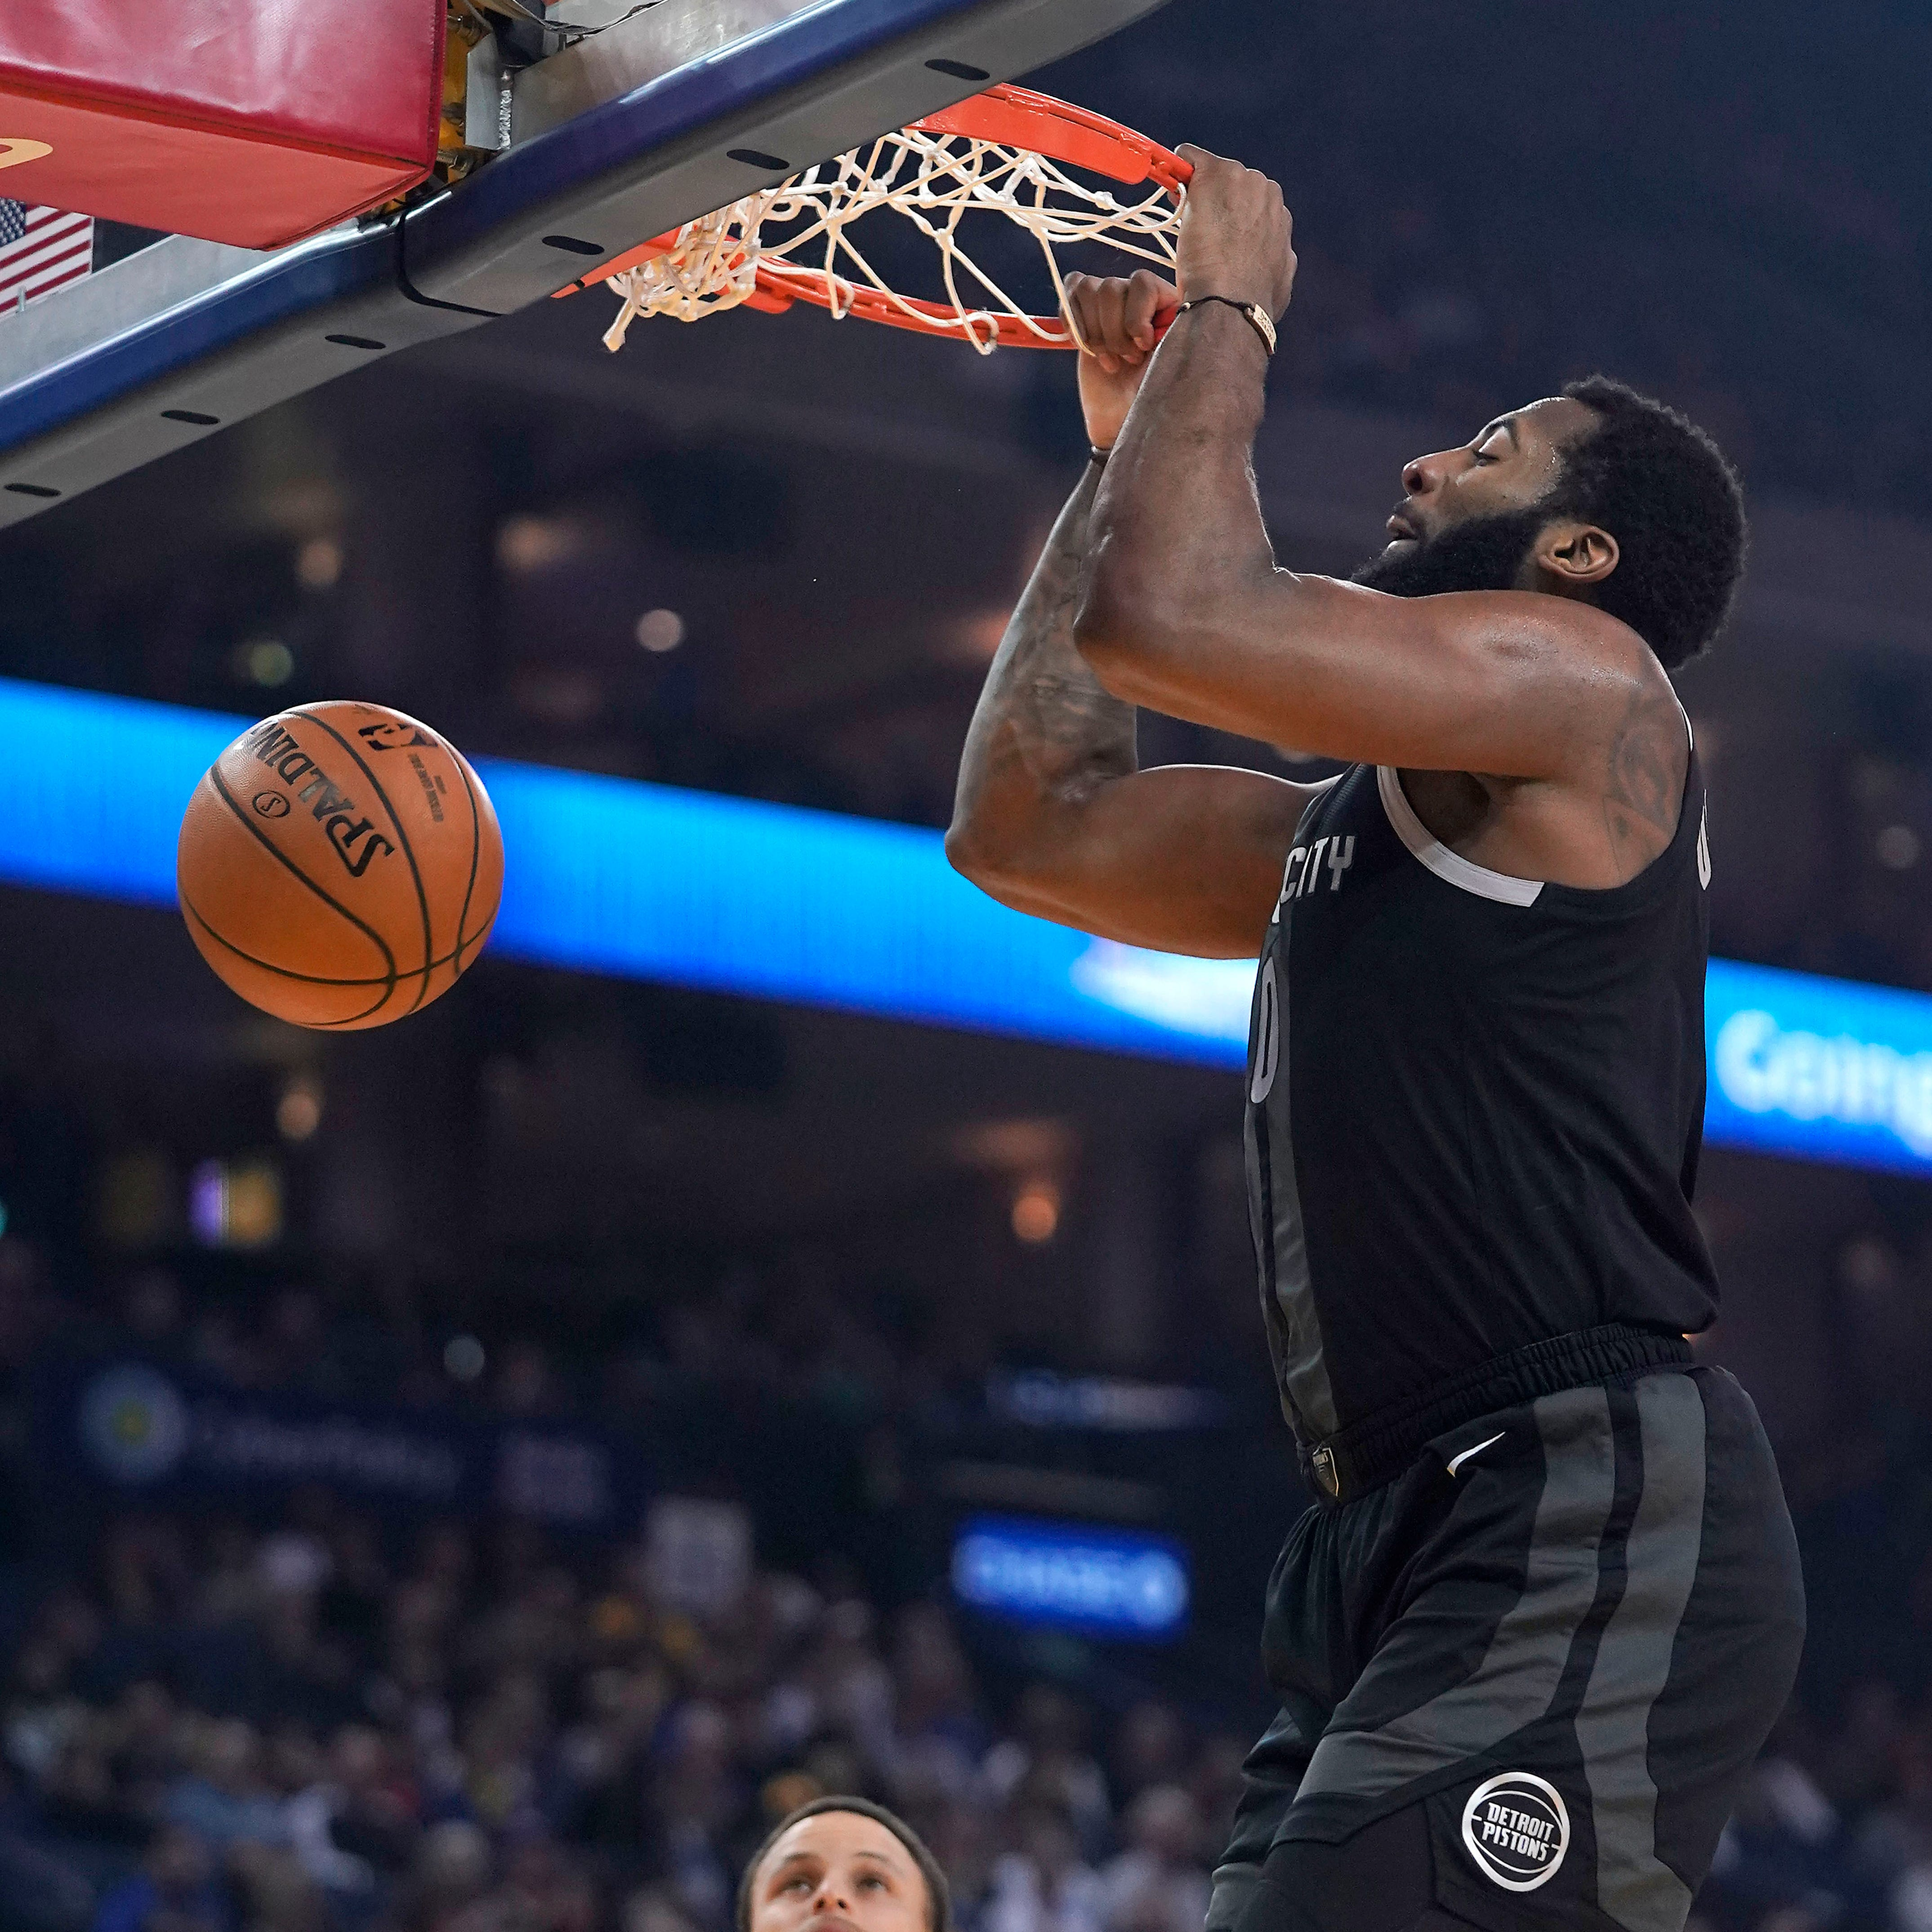 Drummond's game becomes more well-rounded but Pistons still see room for growth